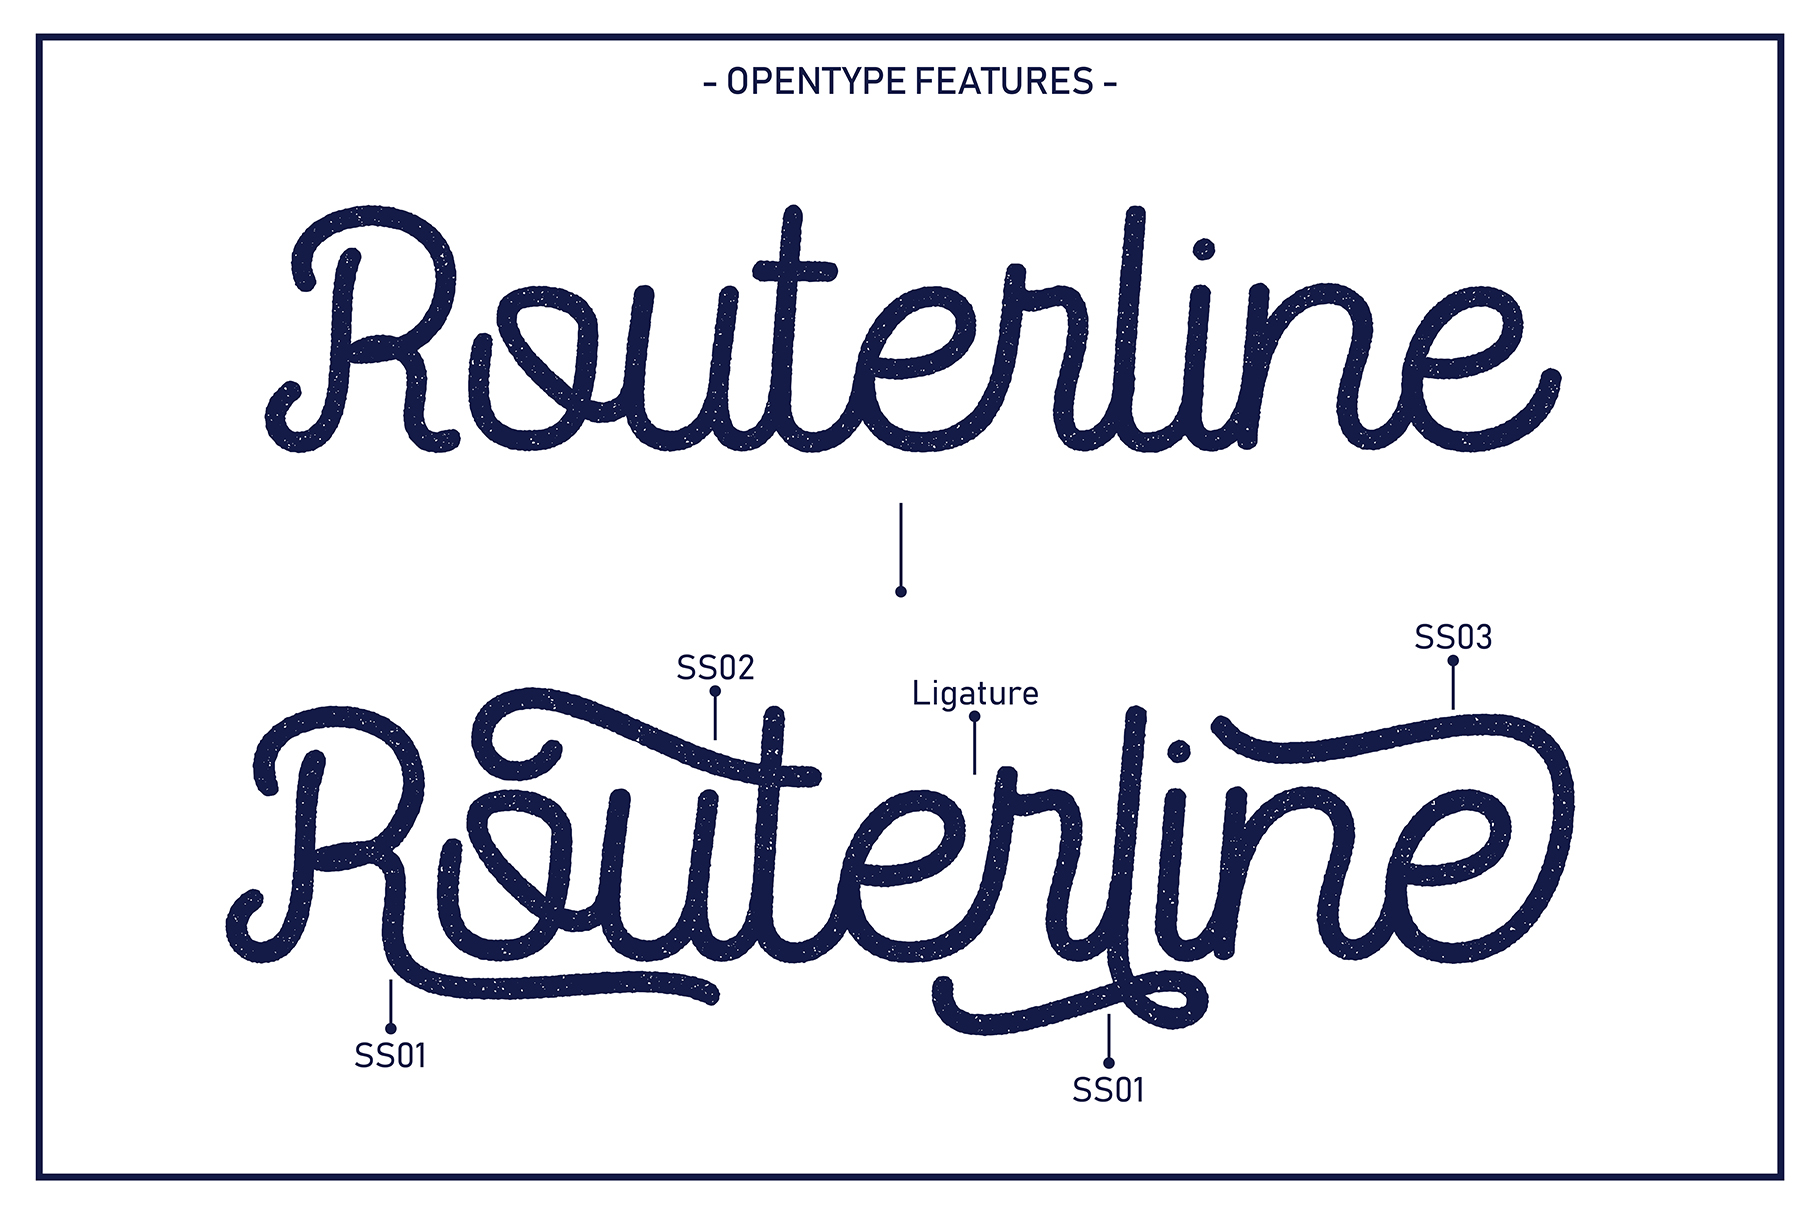 Routerline Rough example image 4